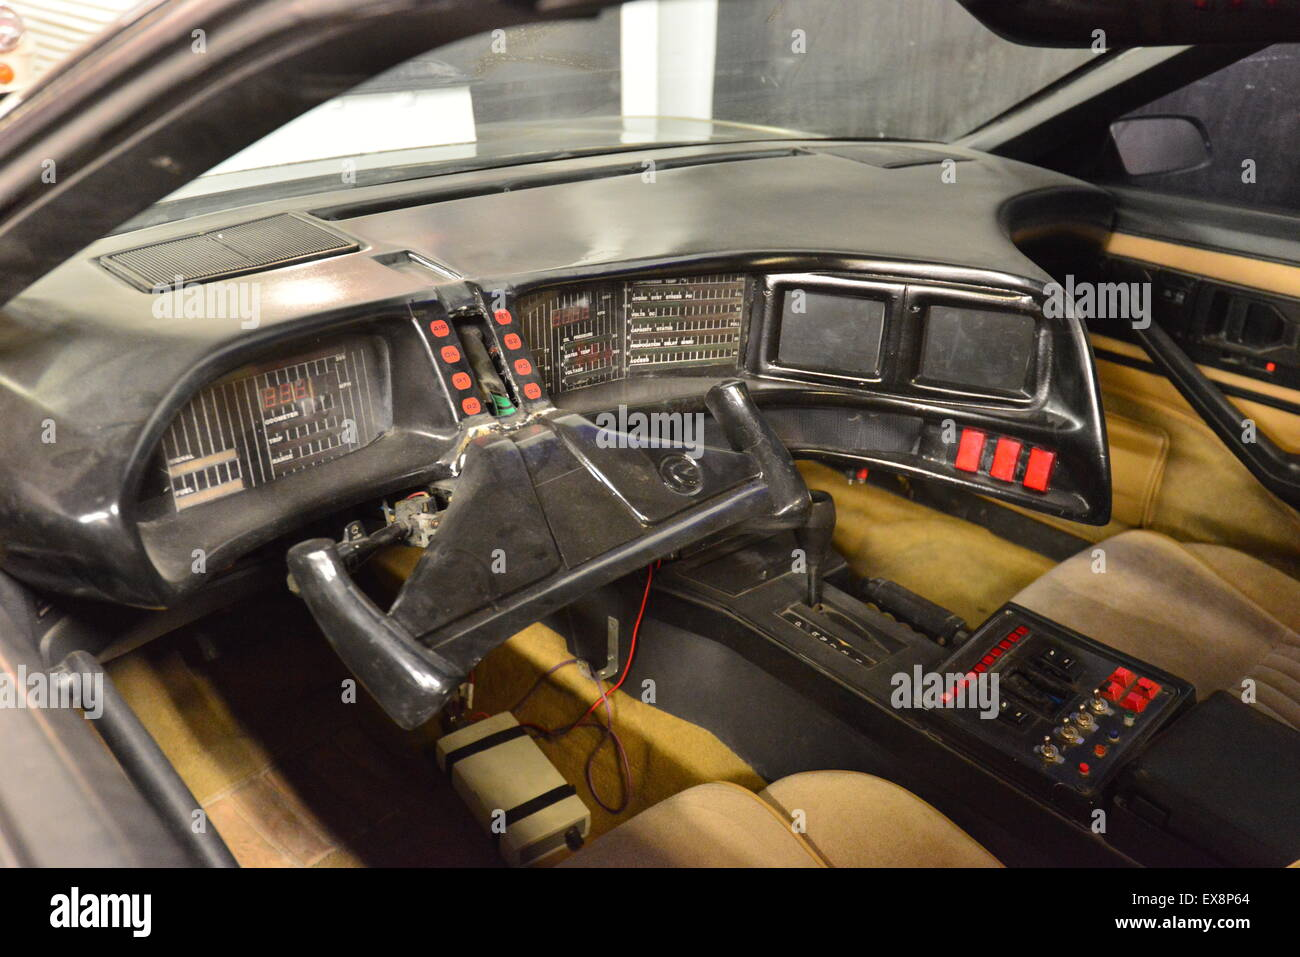 knight rider trans am interior stock photo royalty free image 85015564 alamy. Black Bedroom Furniture Sets. Home Design Ideas